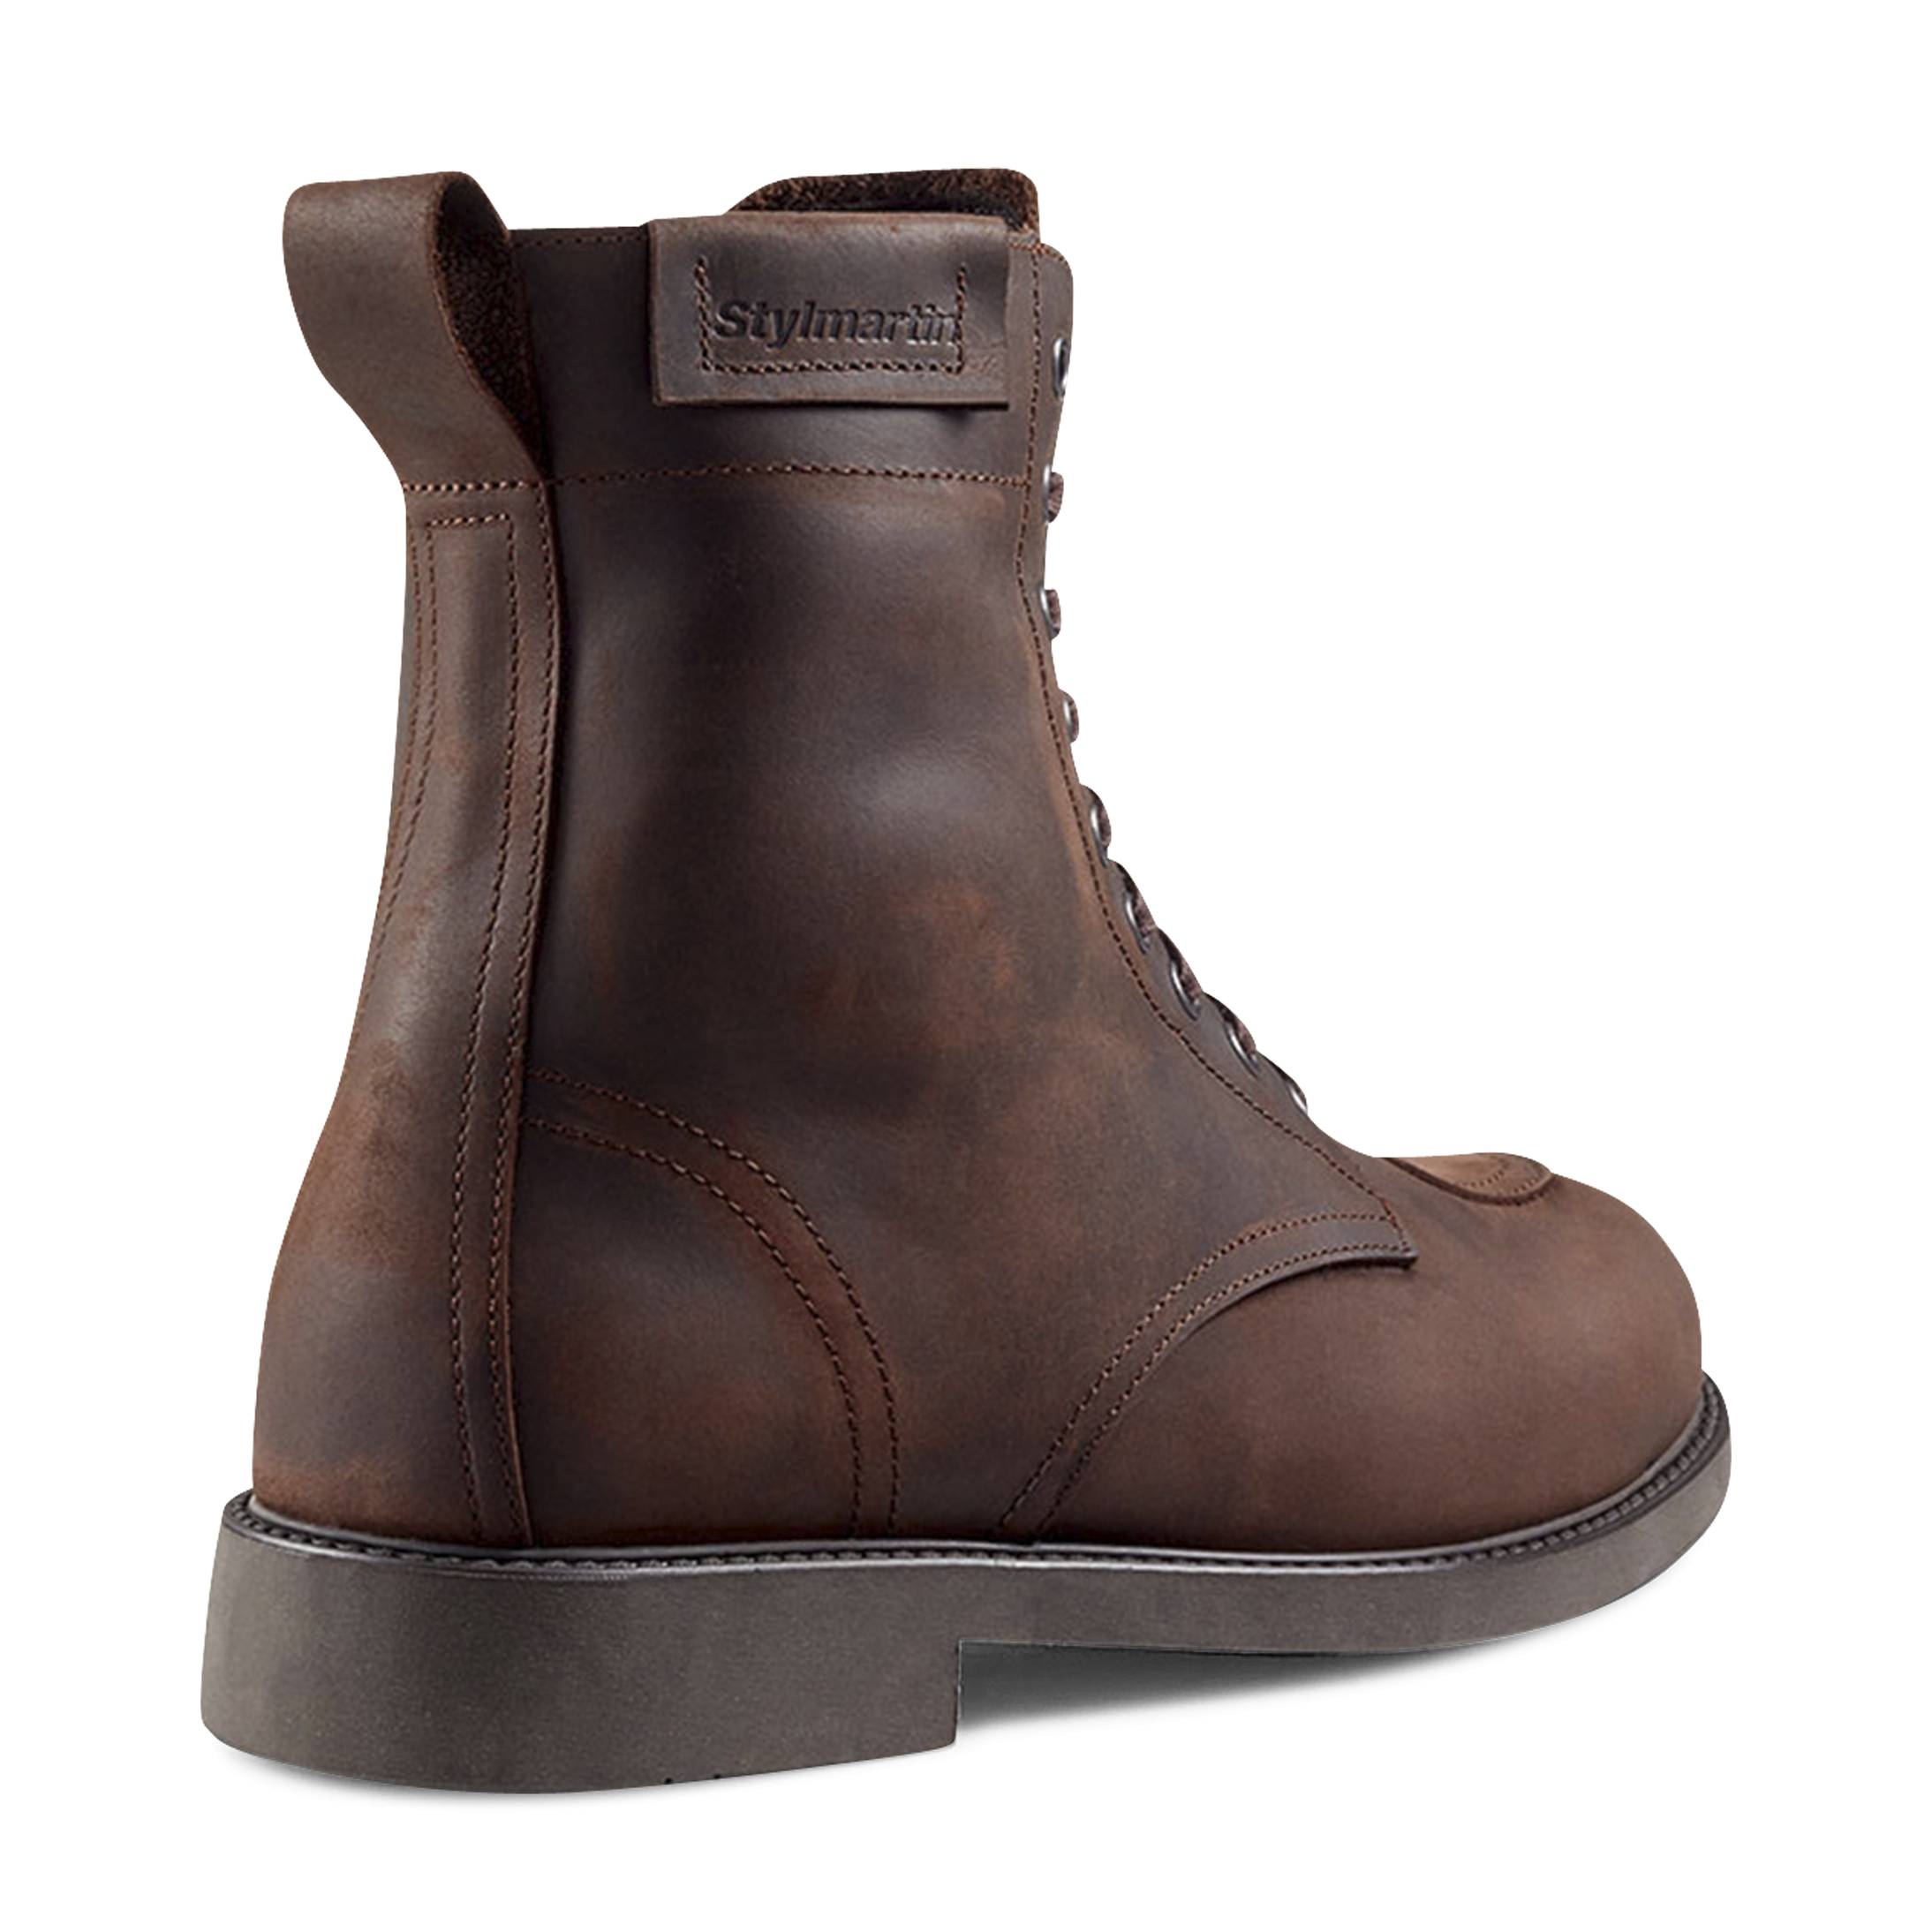 Stylmartin Chaussures Moto Stylmartin District WP Marron 42